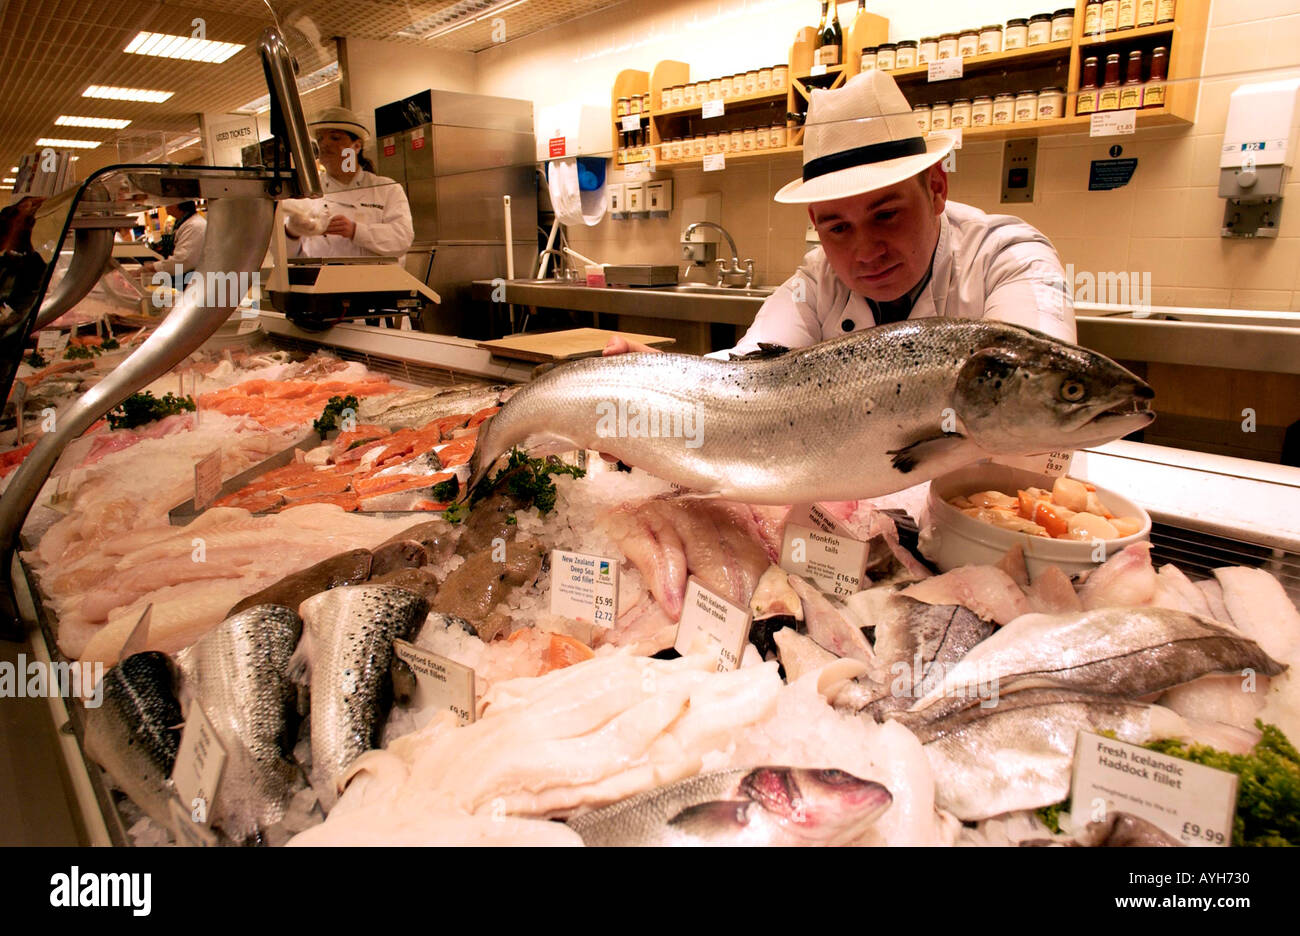 A fishmonger in uniform and hat at Waitrose Britains leading quality supermarket - Stock Image